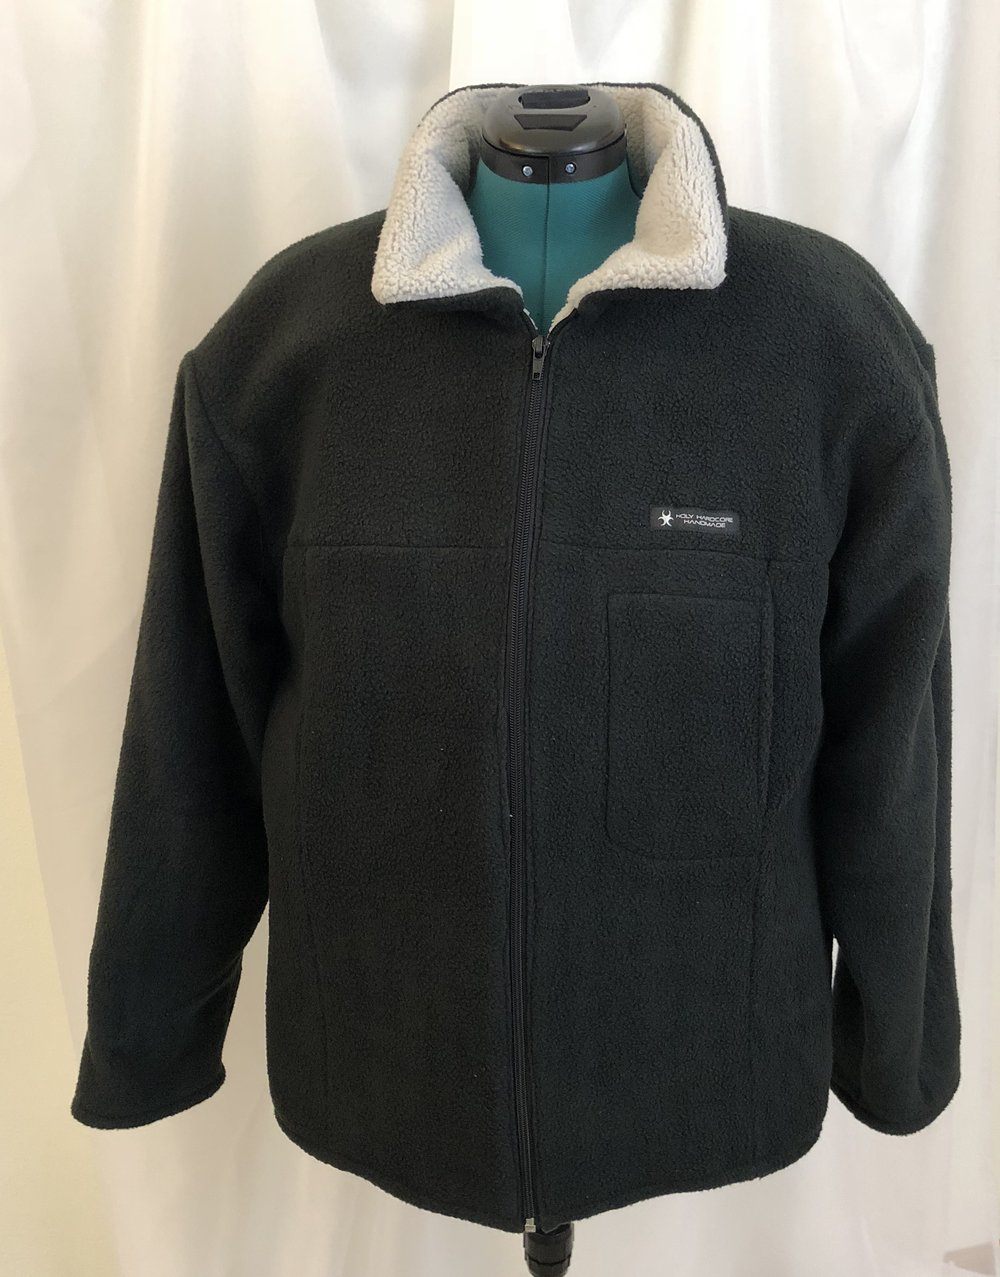 Sherpa Fleece Jacket